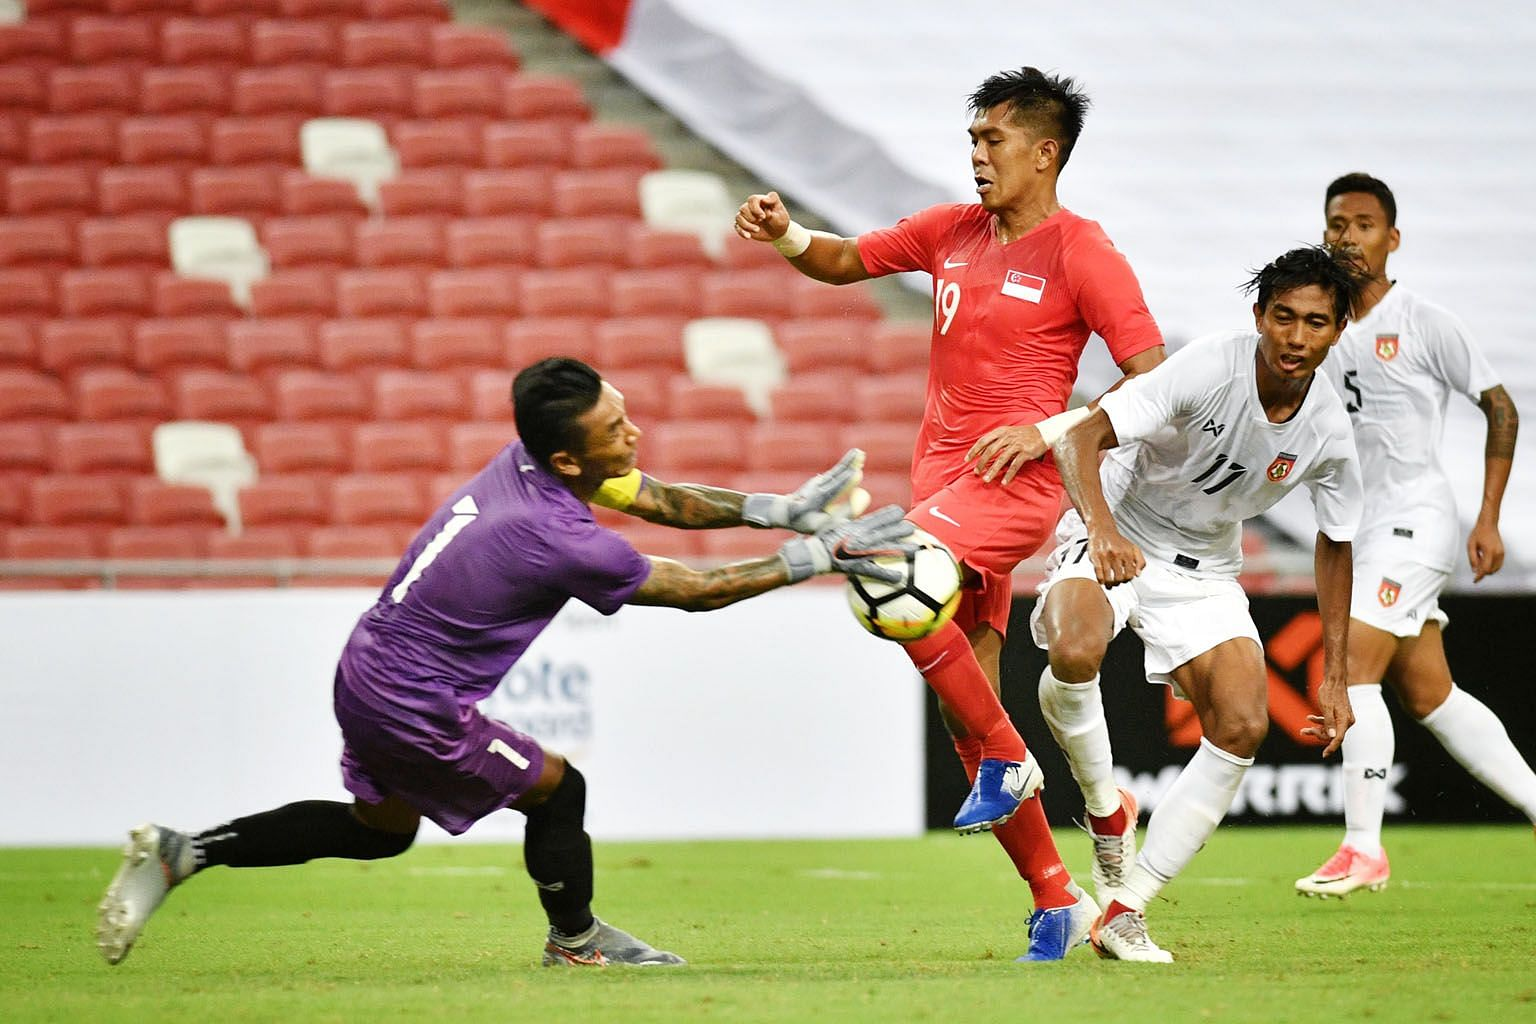 Myanmar goalkeeper Kyaw Zin Htet saving a shot from Singapore's Khairul Amri in the dying moments of their friendly match at the National Stadium last night. Kyaw Ko Ko's double sandwiched the equaliser by Gabriel Quak. ST PHOTO: CHONG JUN LIANG